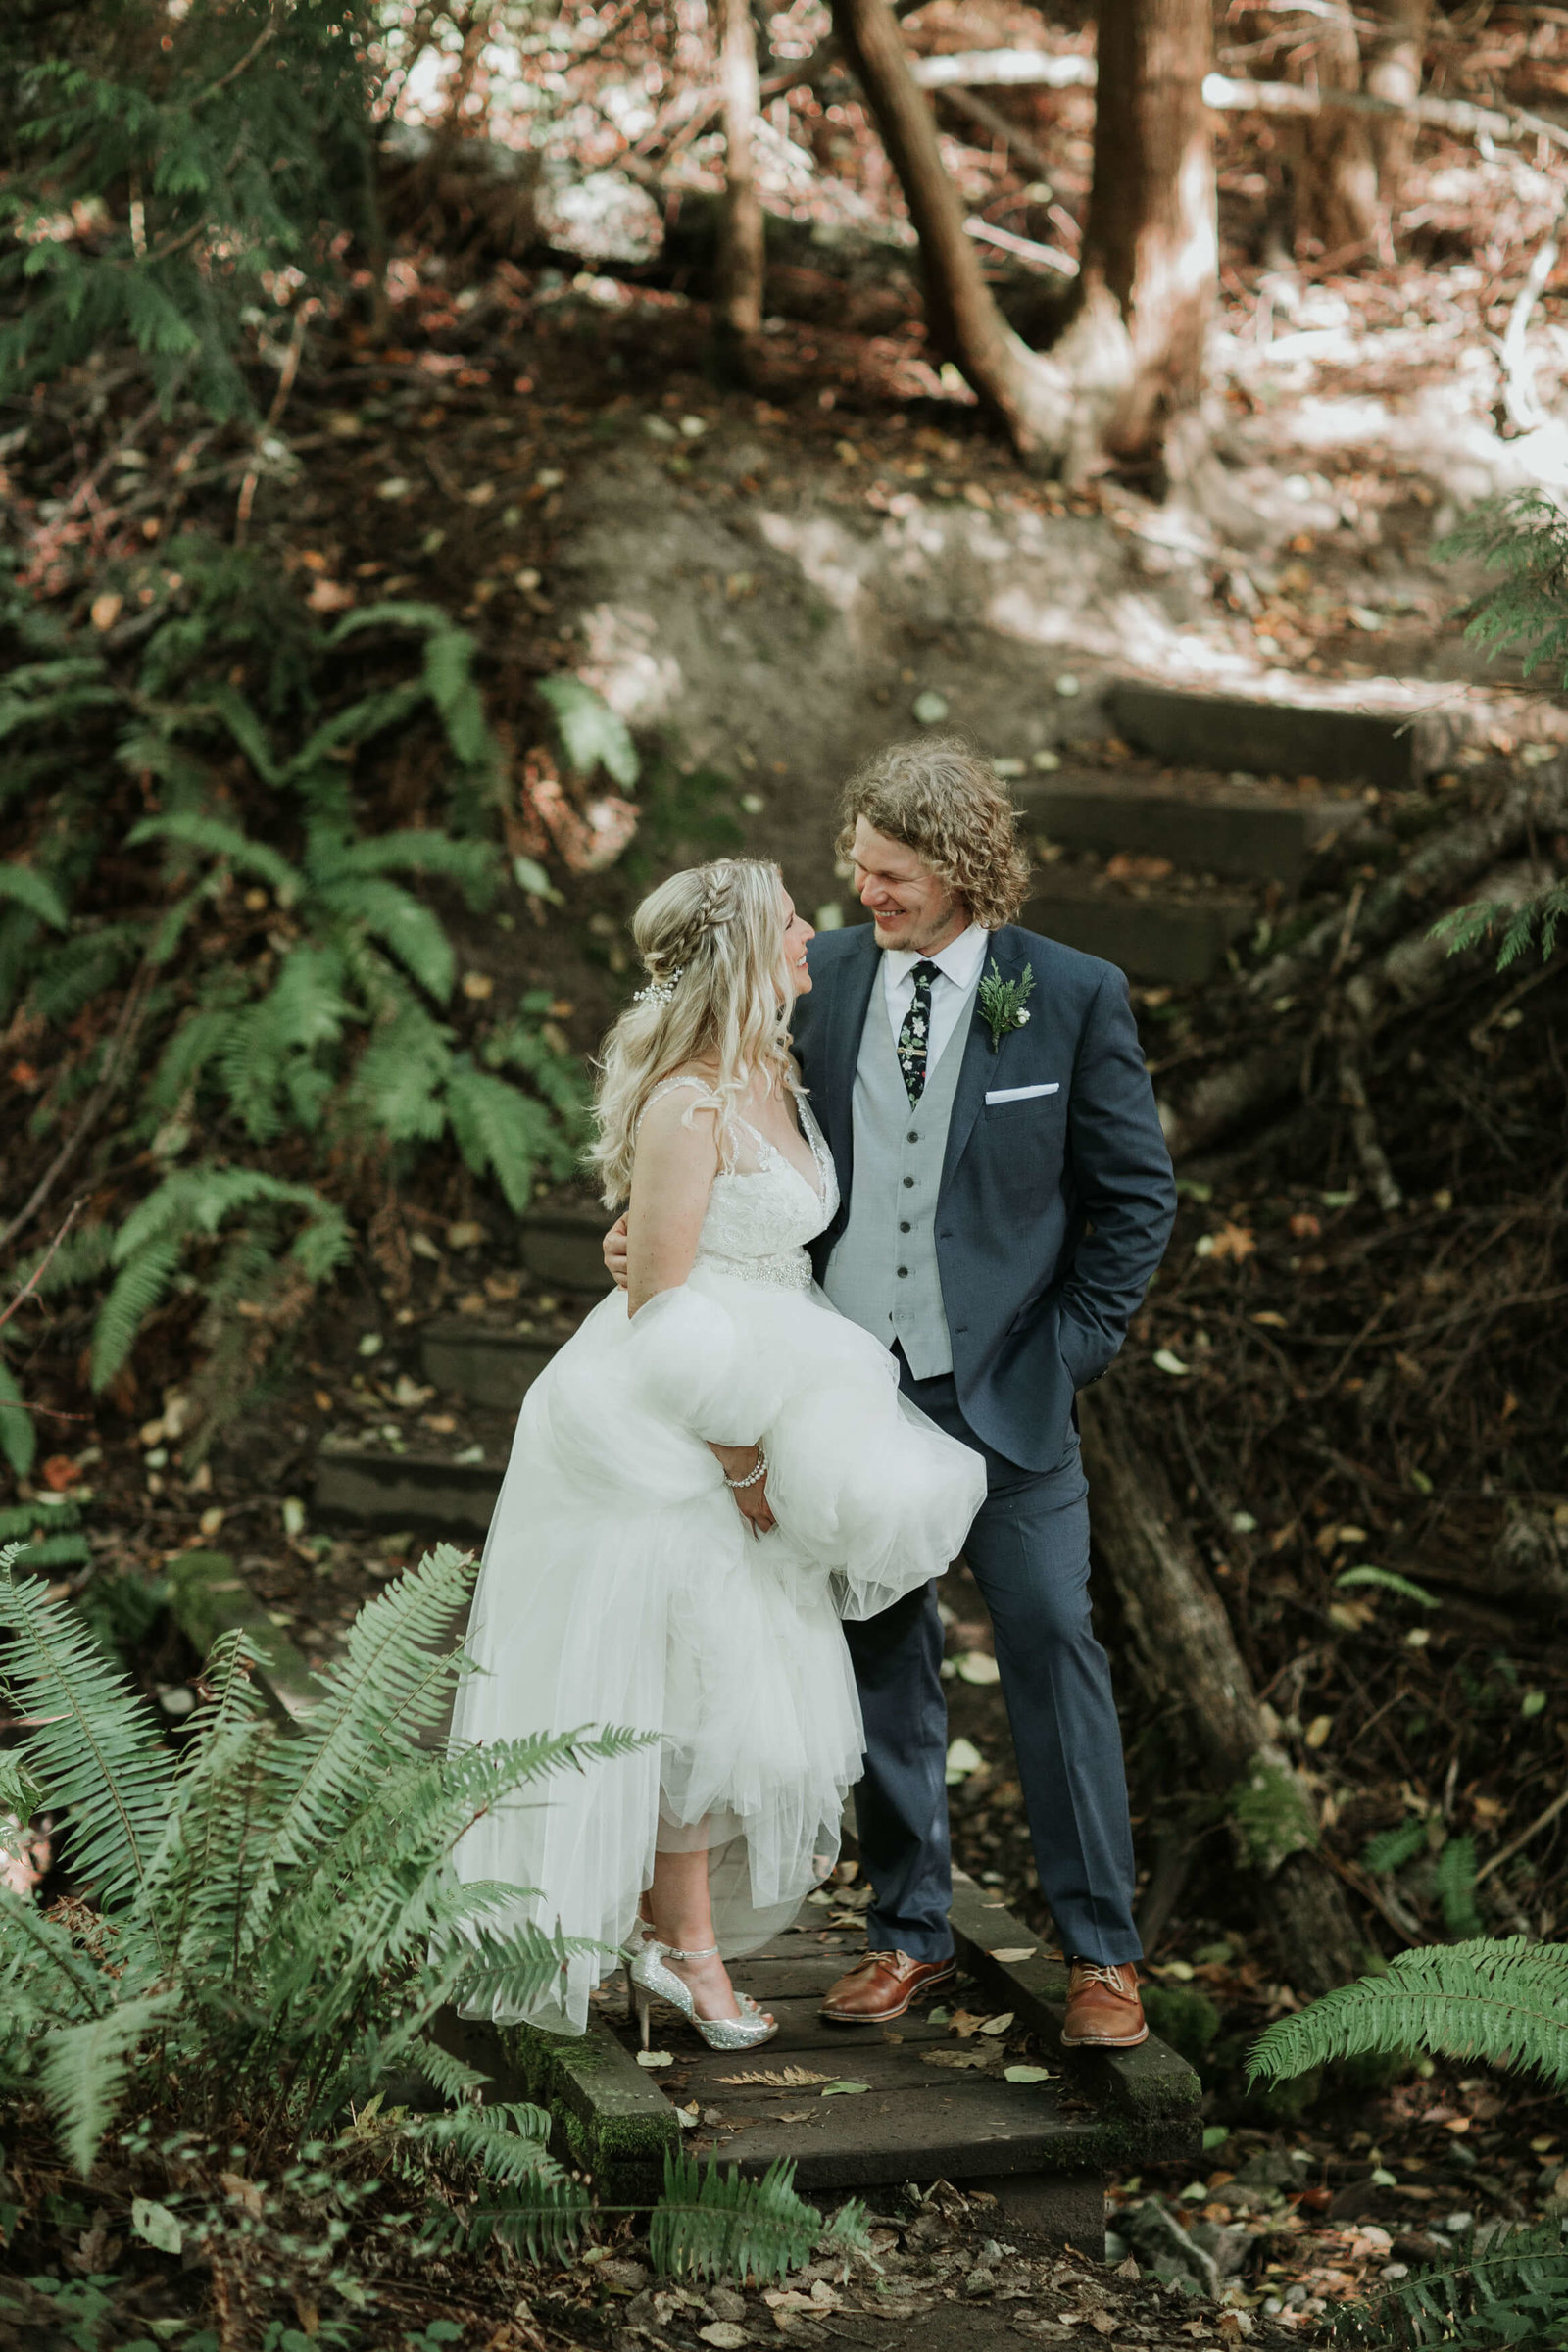 Orcas-island-wedding-katherine&robin-adina-preston-weddings-9-22-2018-APW-H862